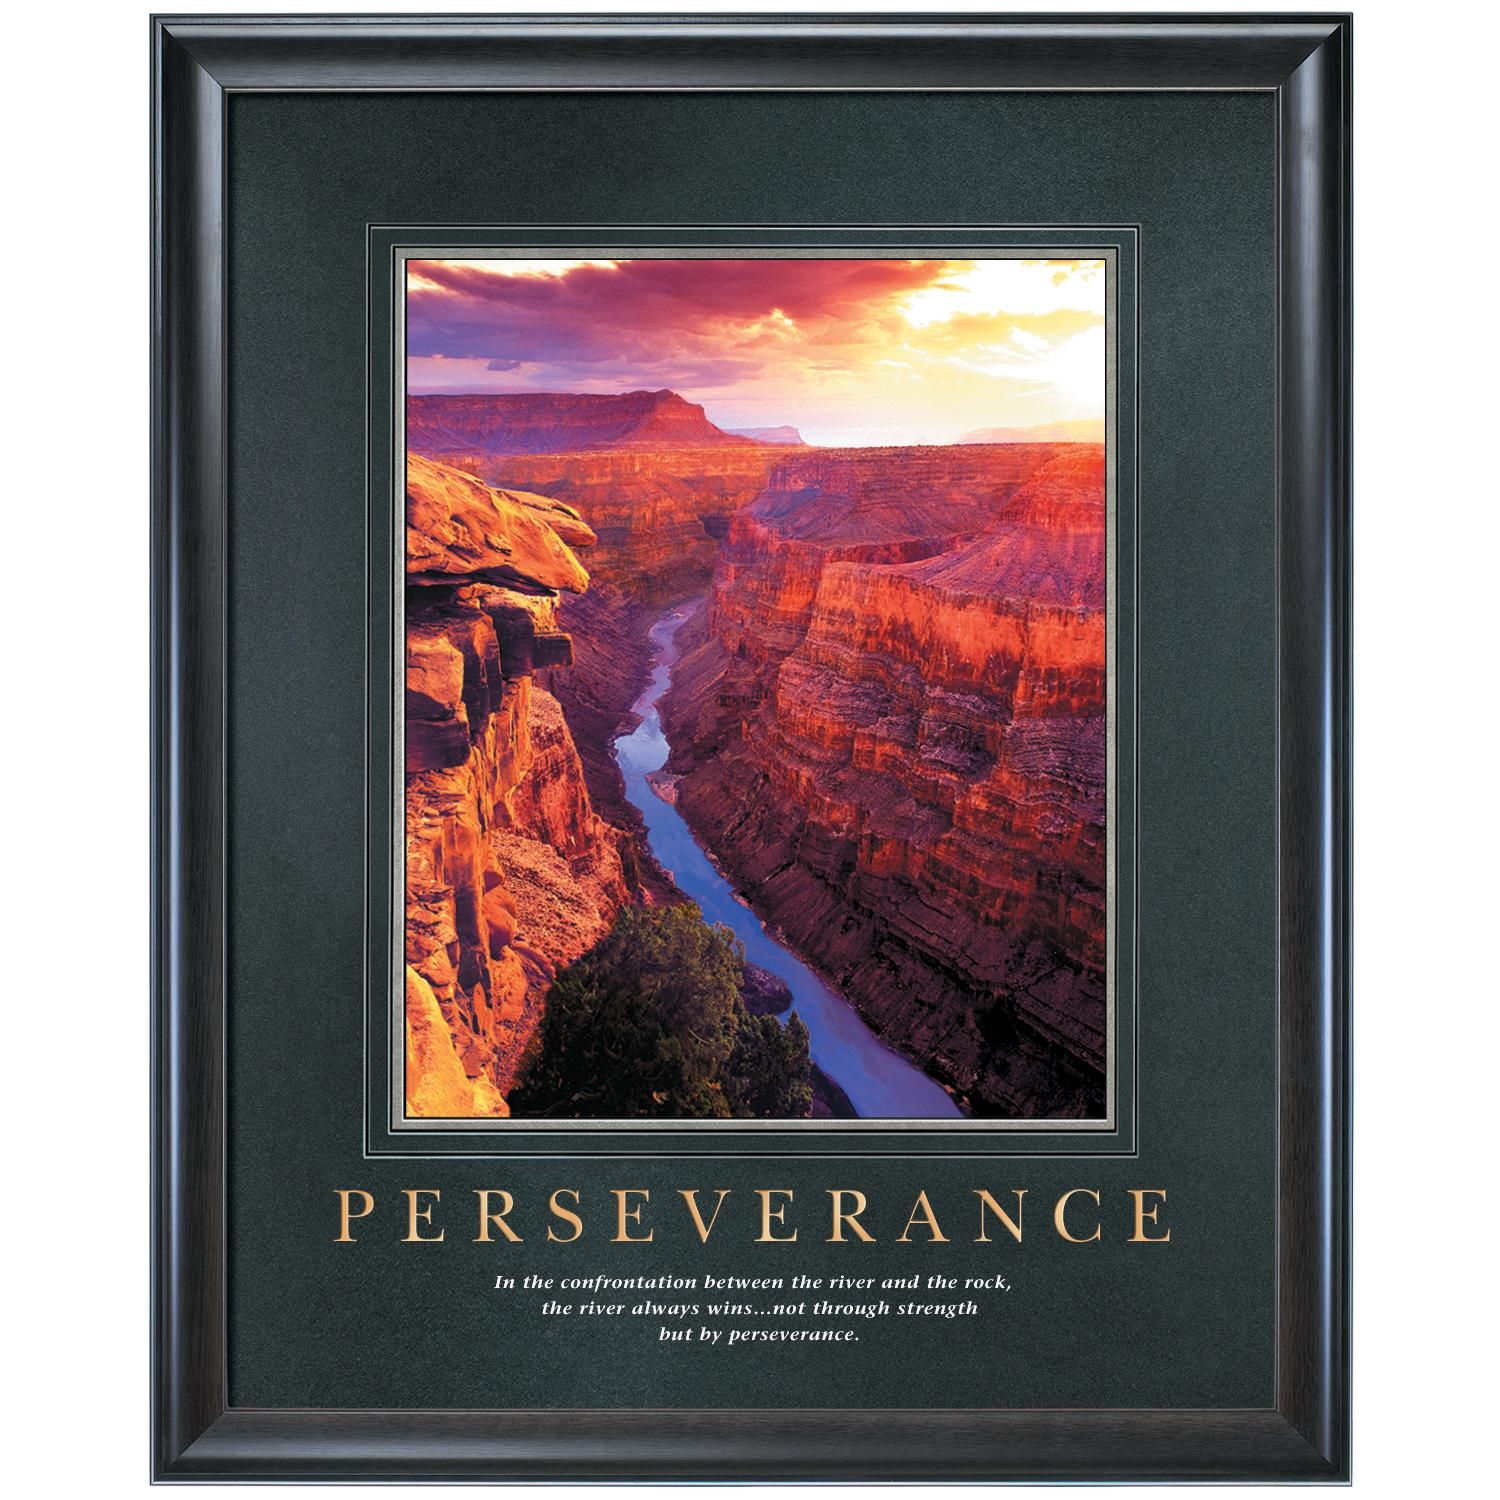 Persistence Motivational Quotes: Perseverance Motivational Poster